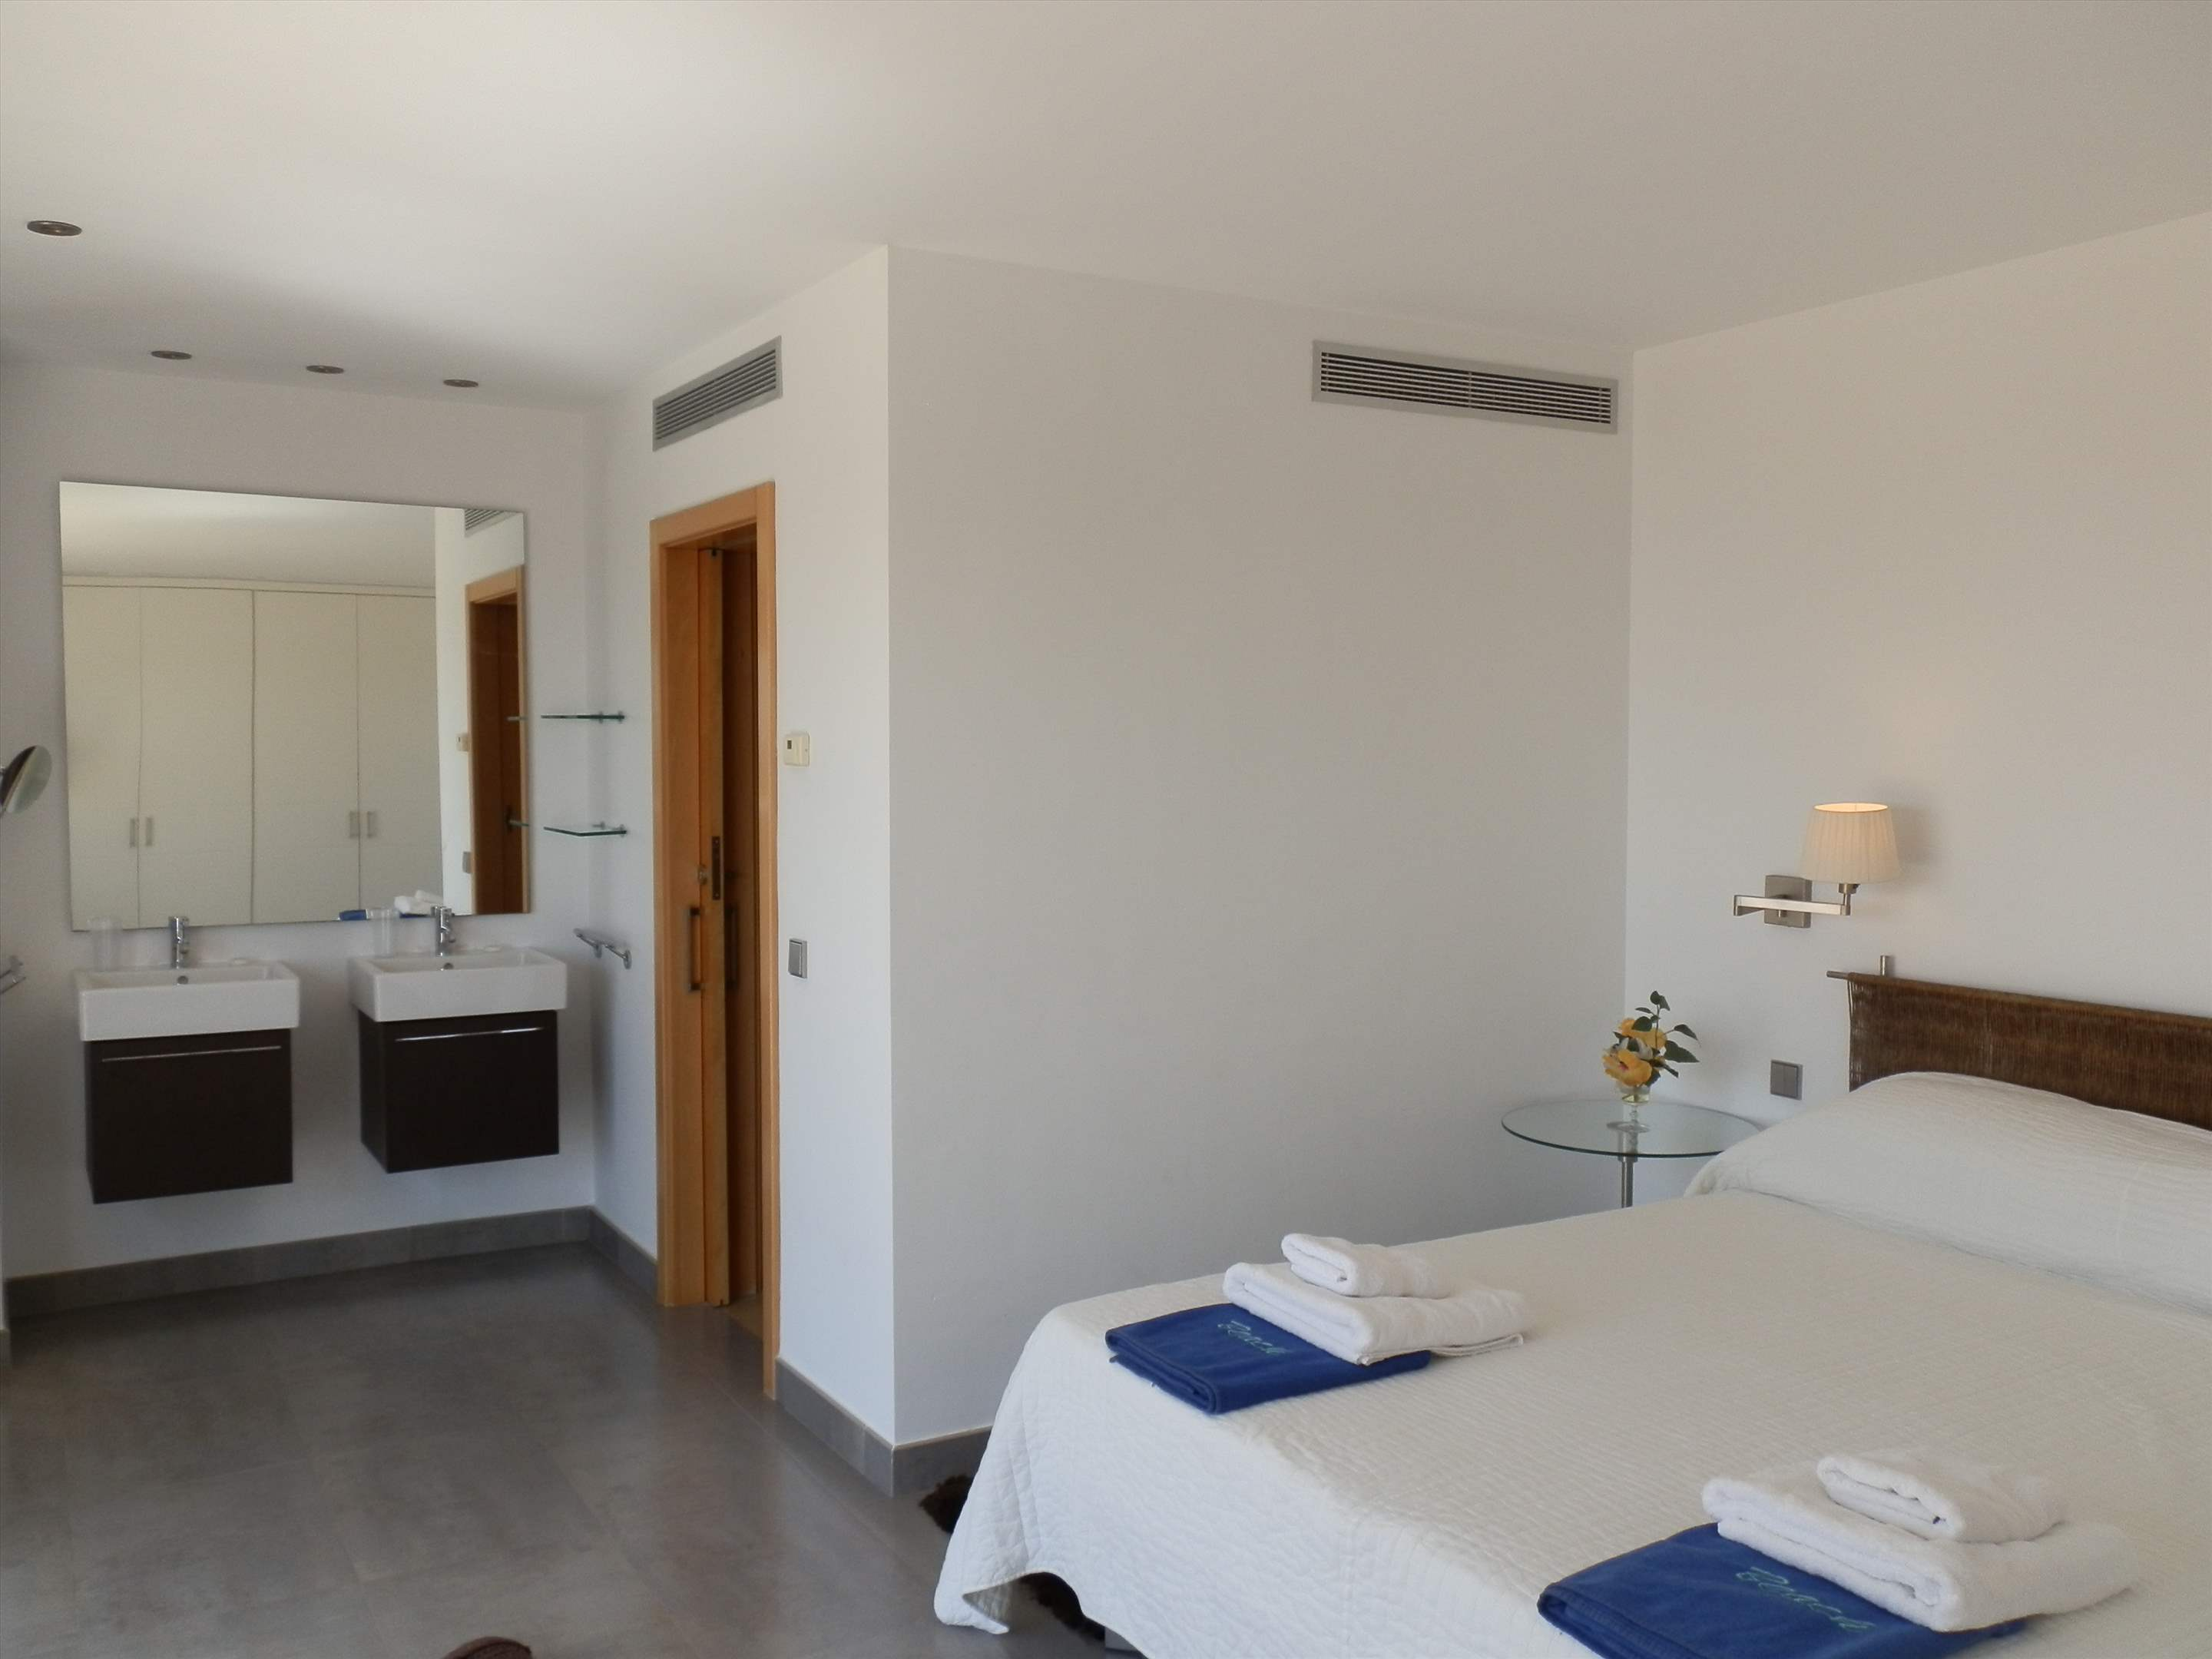 Casa Pitiusa, 4 Bedroom rate, 4 bedroom villa in Mahon, San Luis & South East, Menorca Photo #15